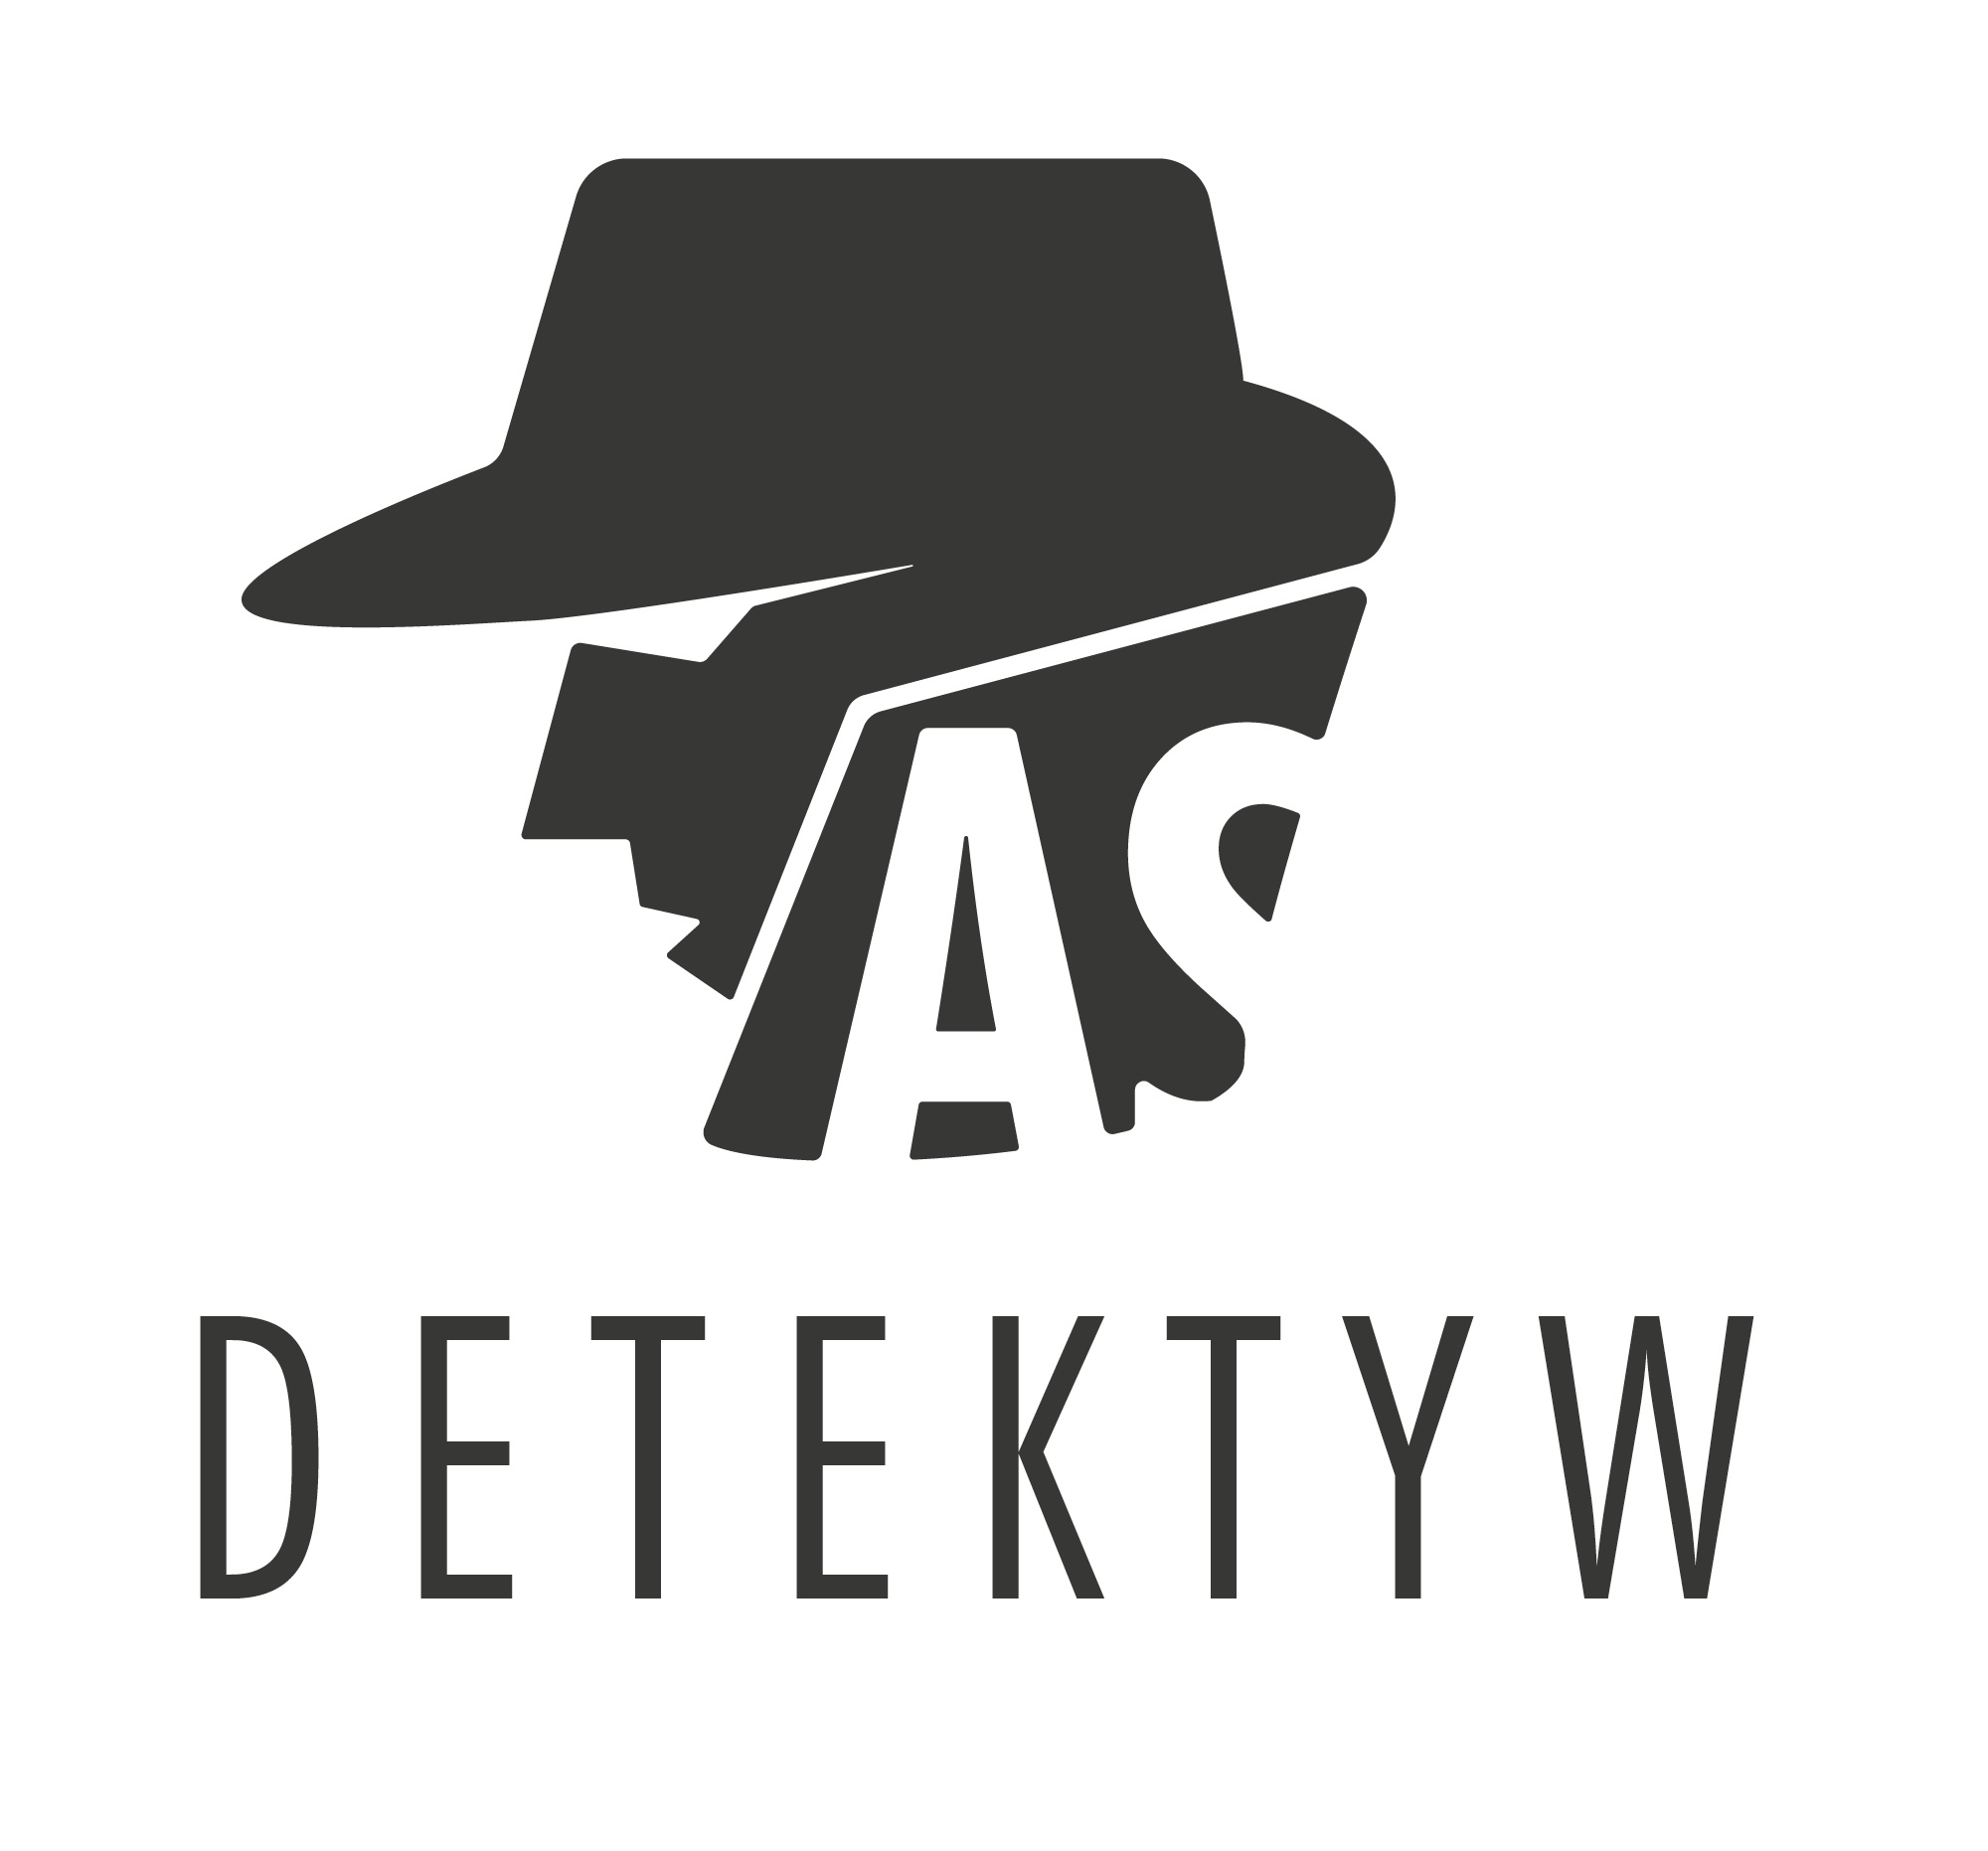 AS Detektyw – Brodnica